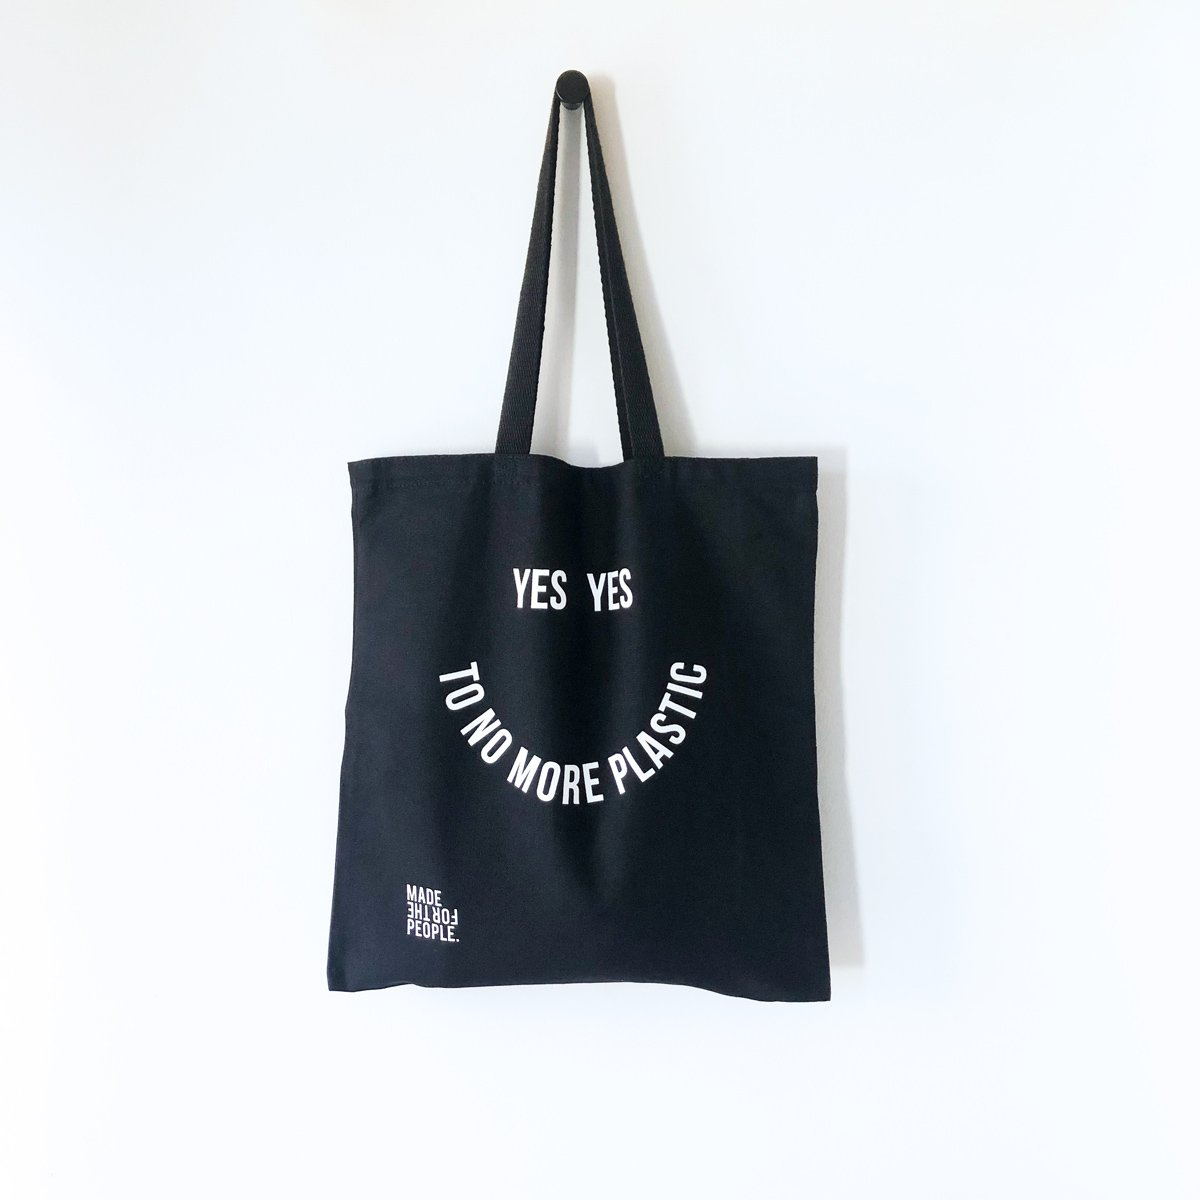 No More Plastic Tote Bag - Made For The People